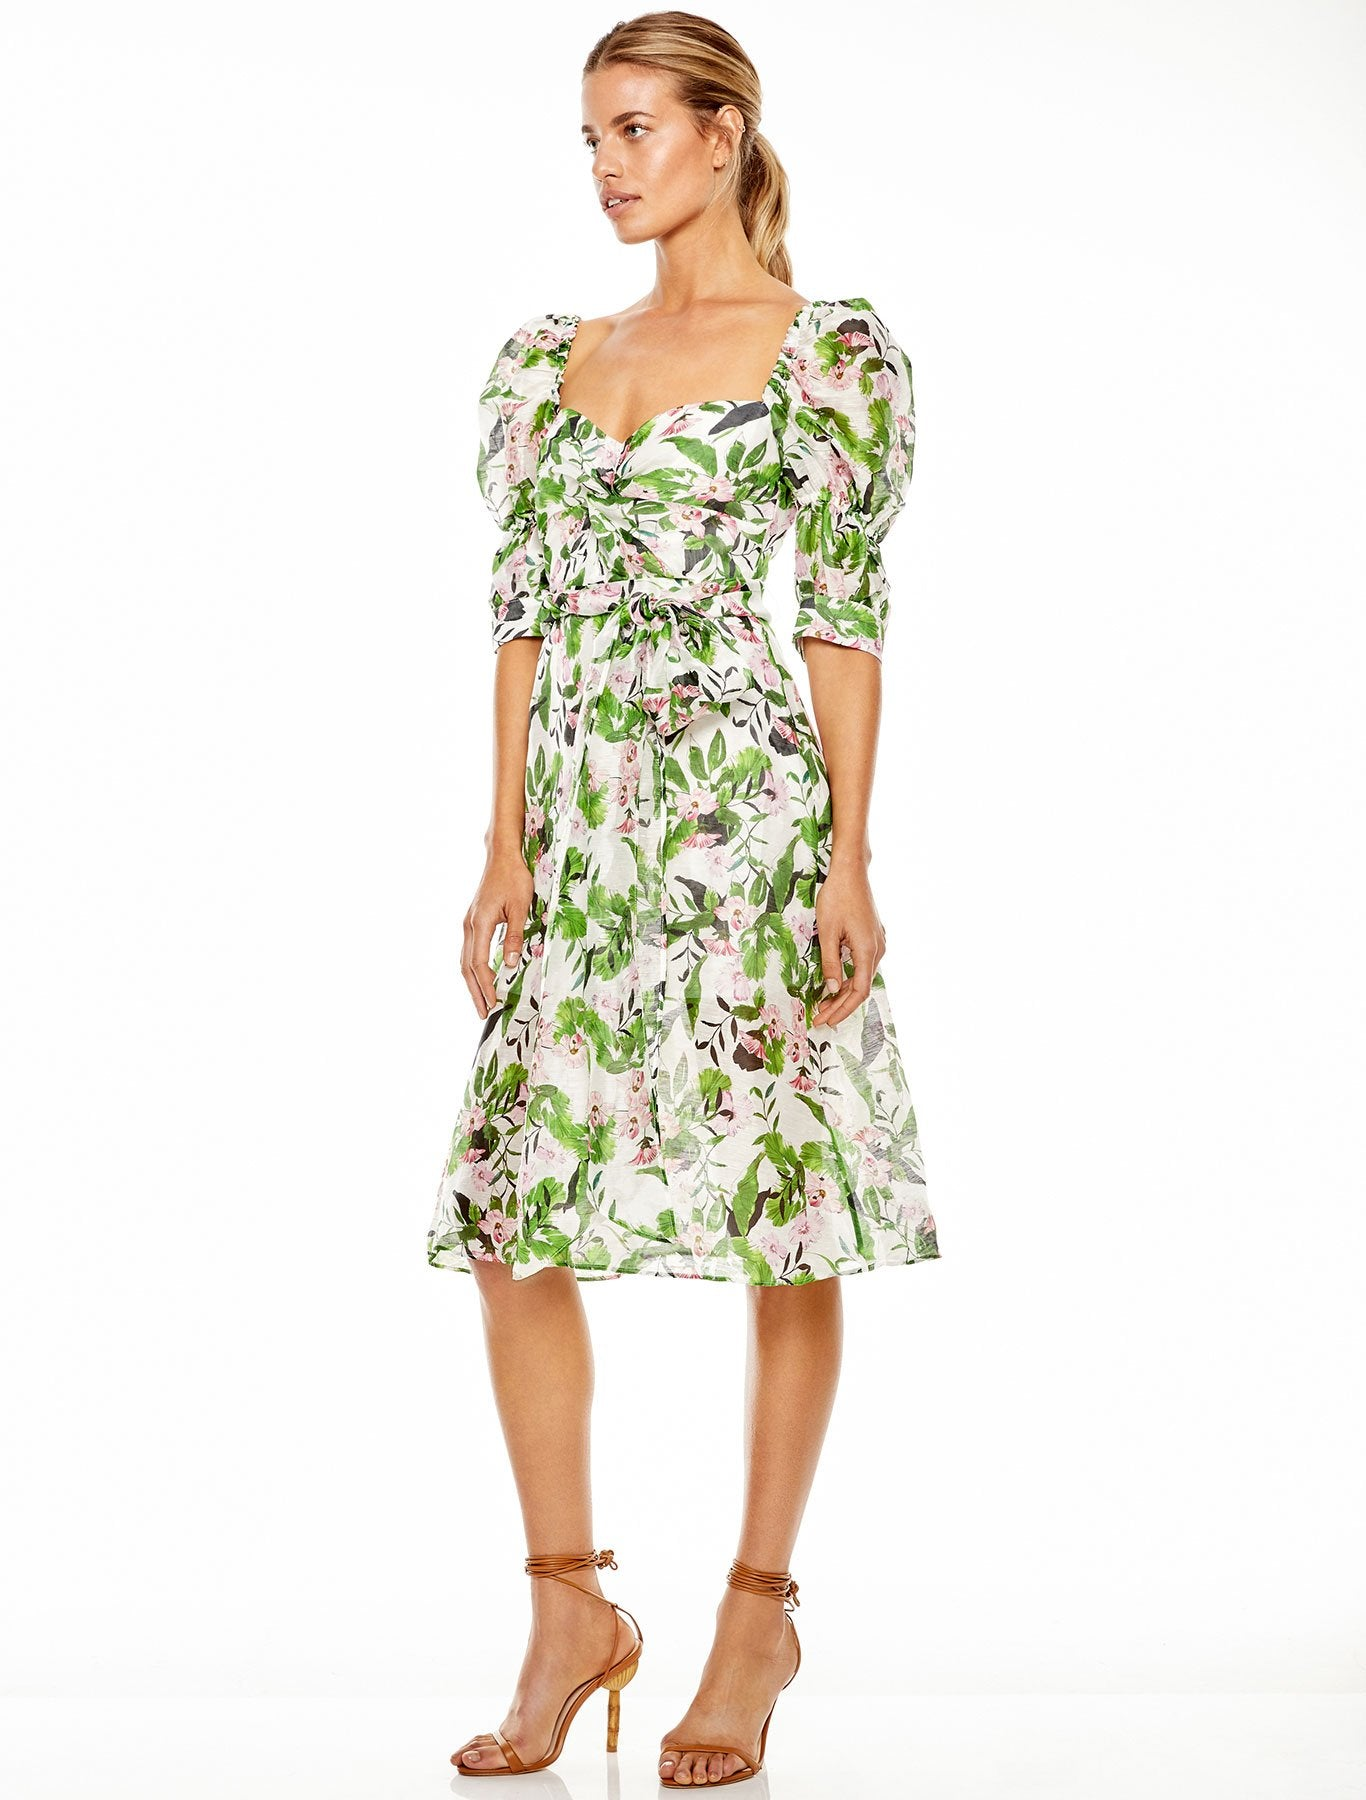 TROPO DREAMS MIDI DRESS